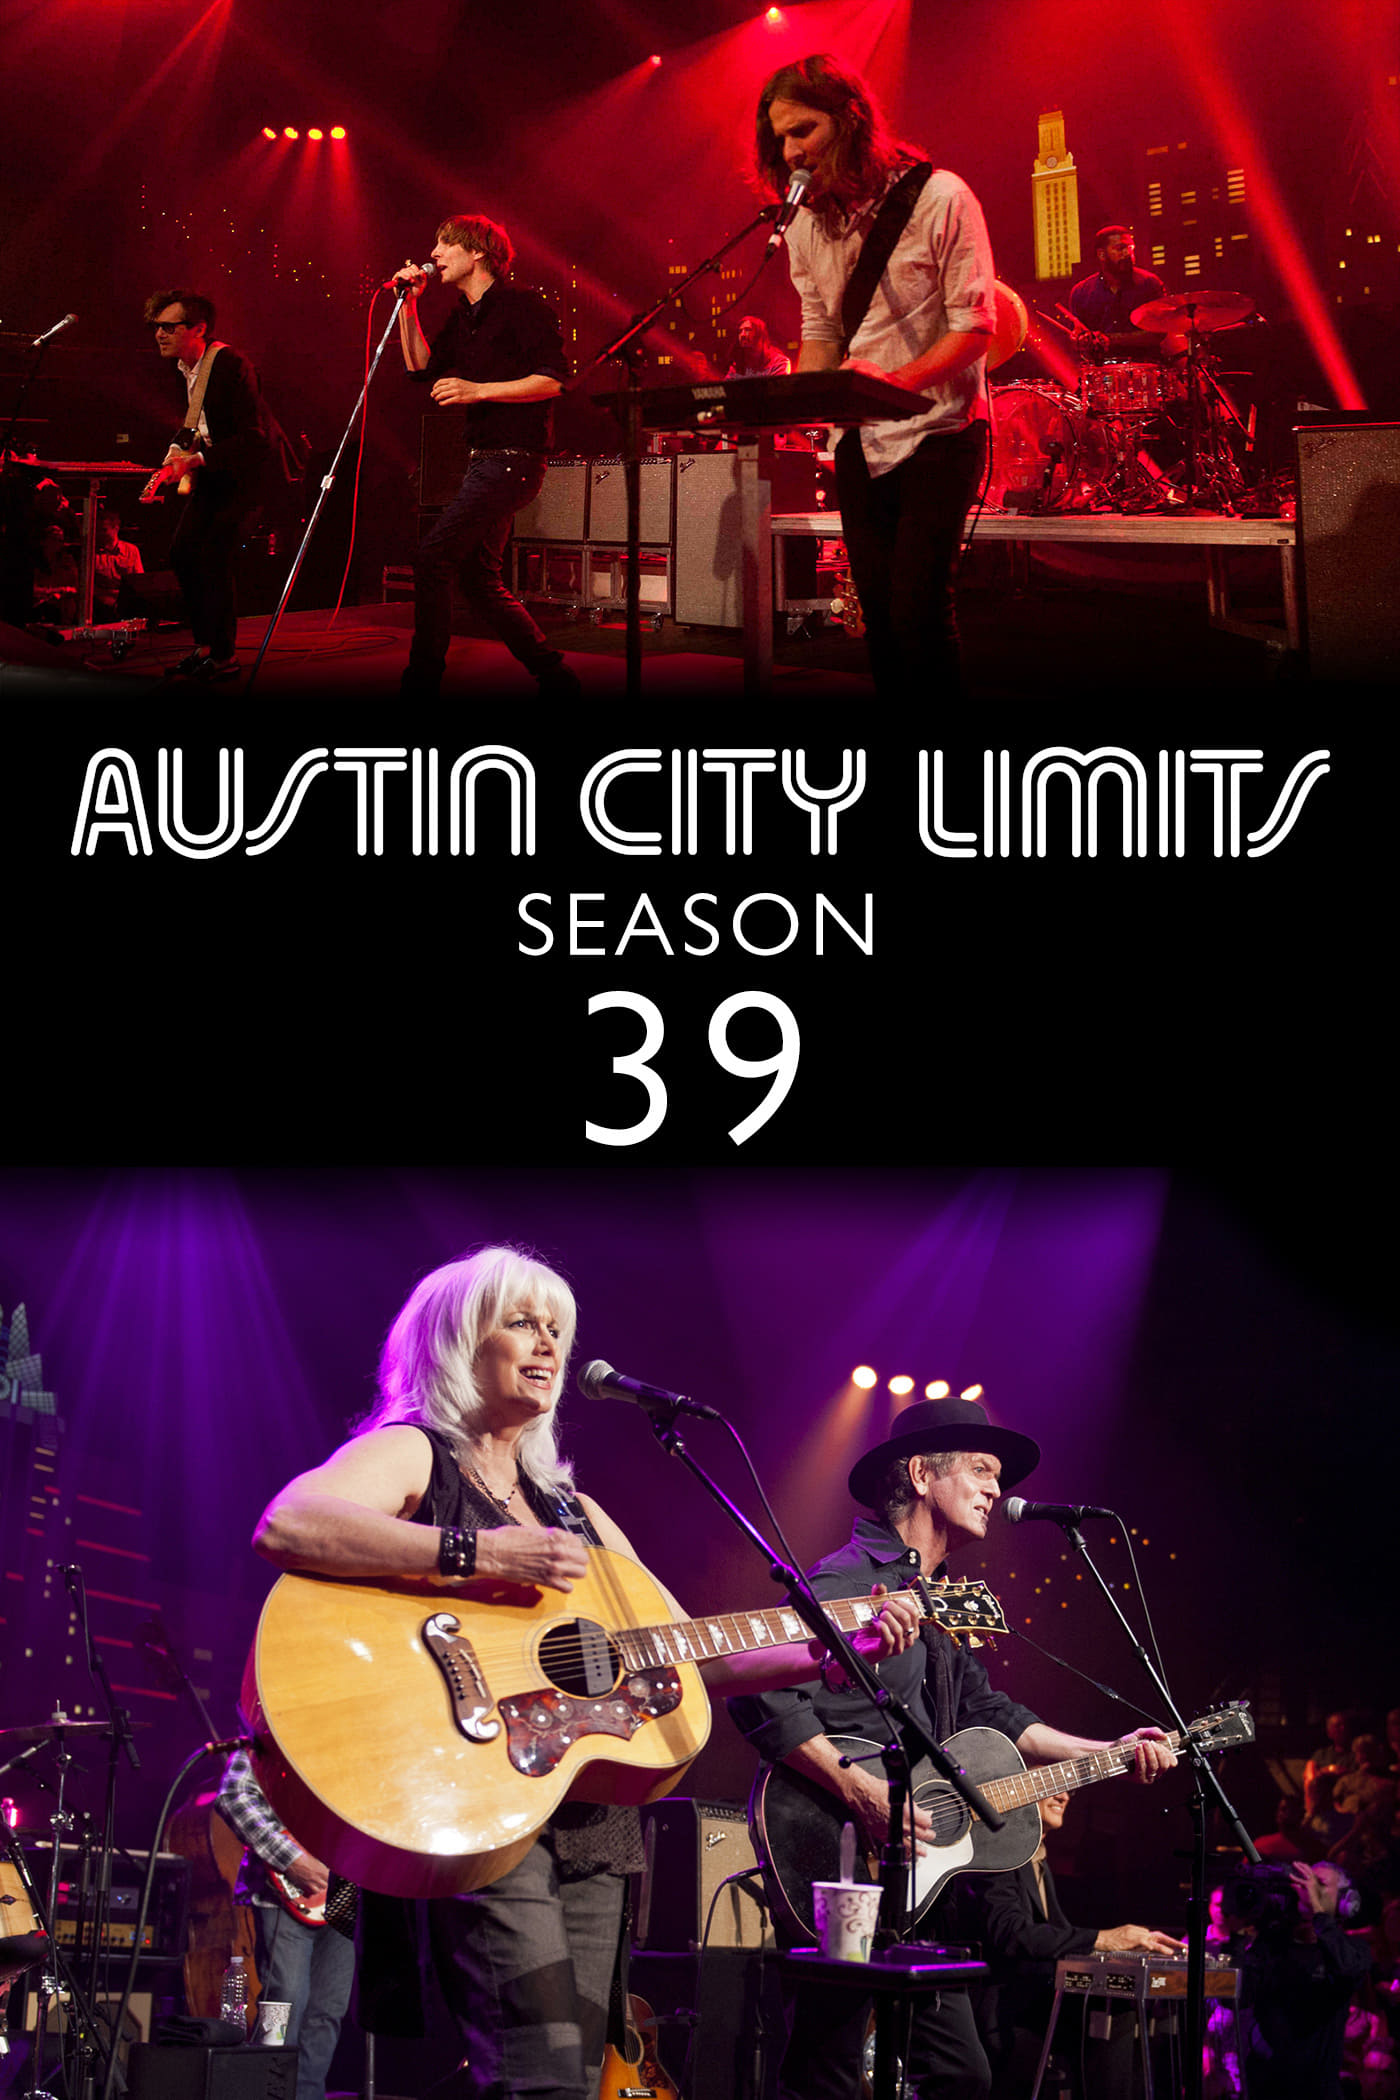 Austin City Limits Season 39